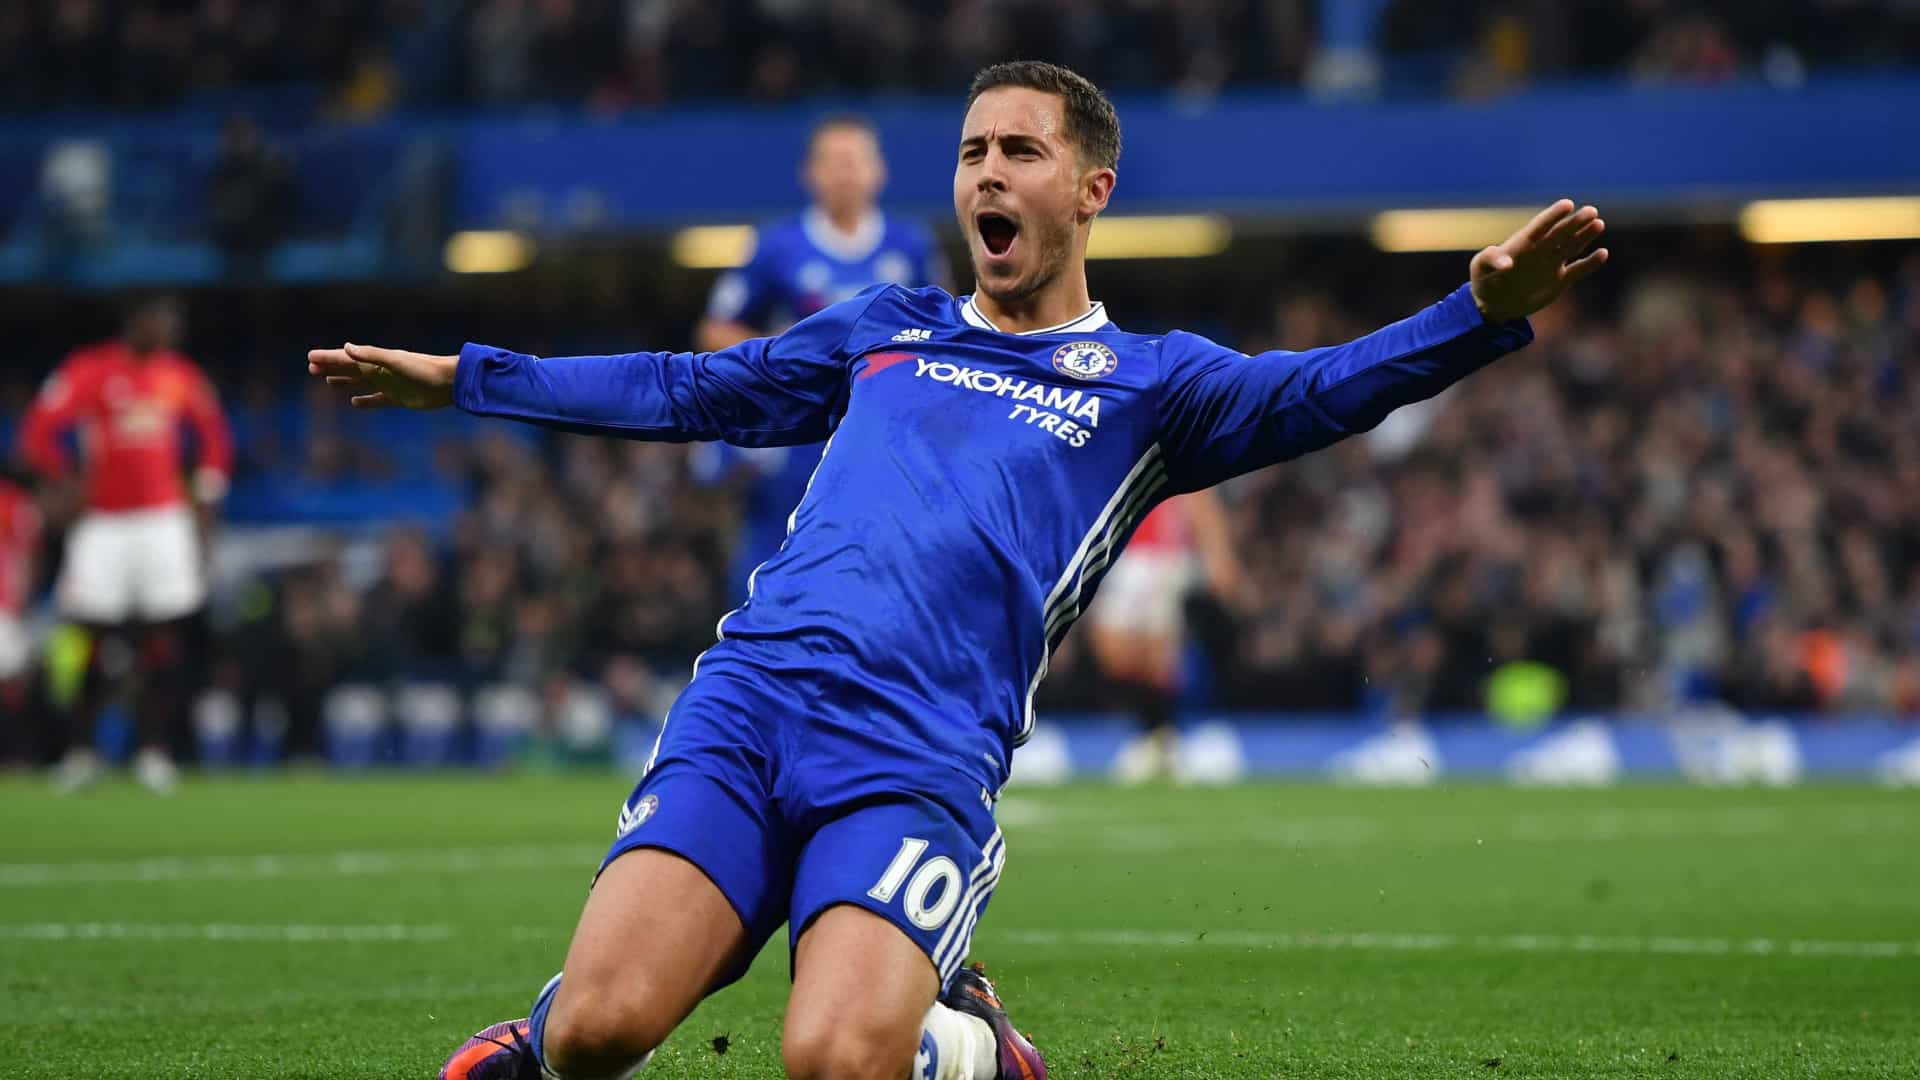 Hazard recusa renovar com o Chelsea à espera do Real Madrid